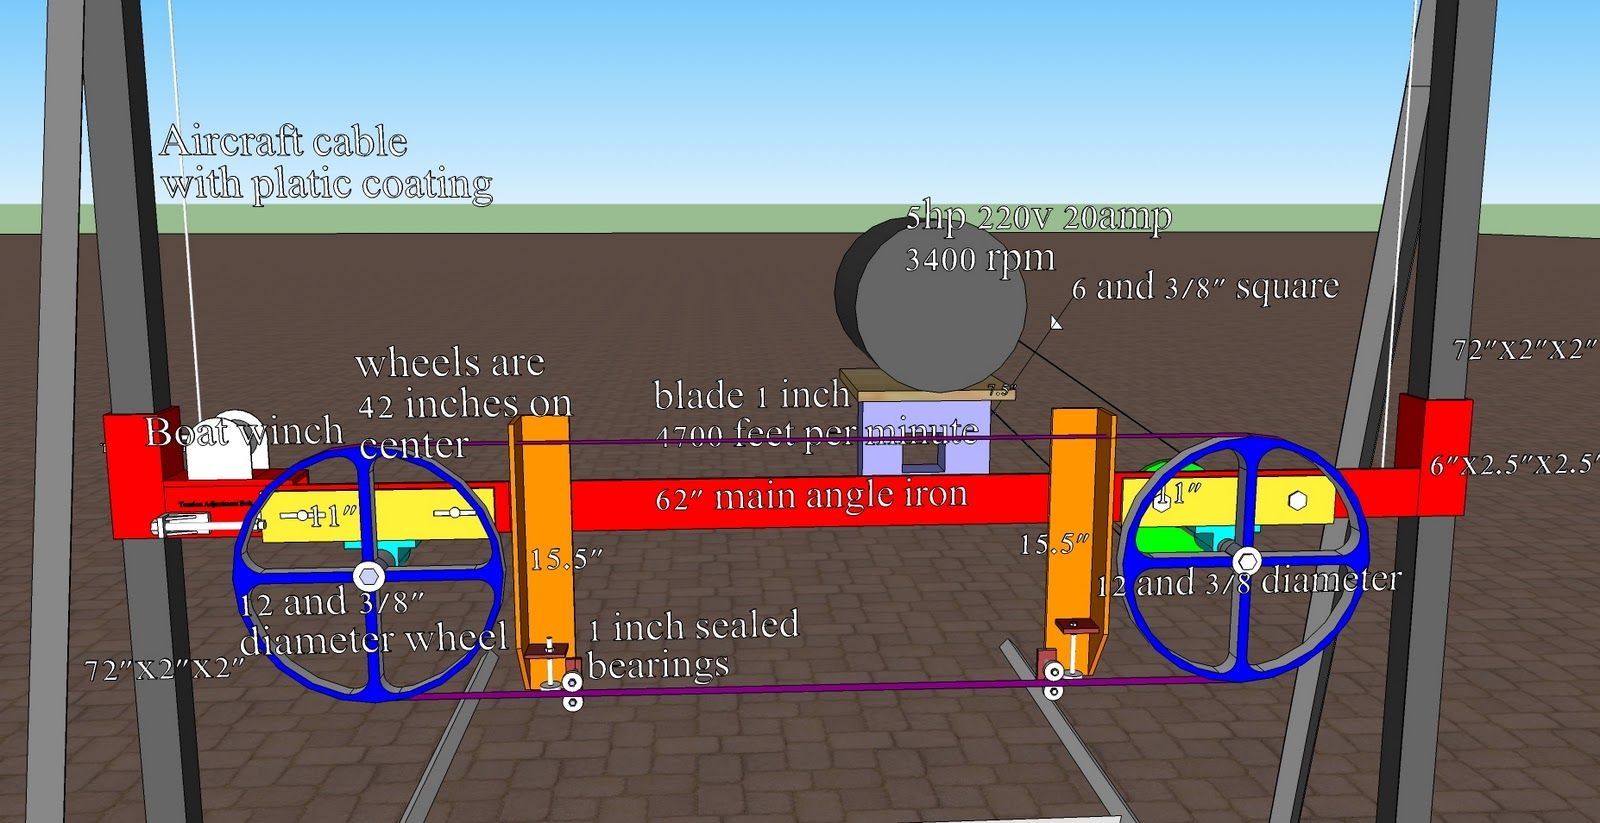 Band Saw Sawmill Plans Free Bandsaw Mill Plans For Free Lauren